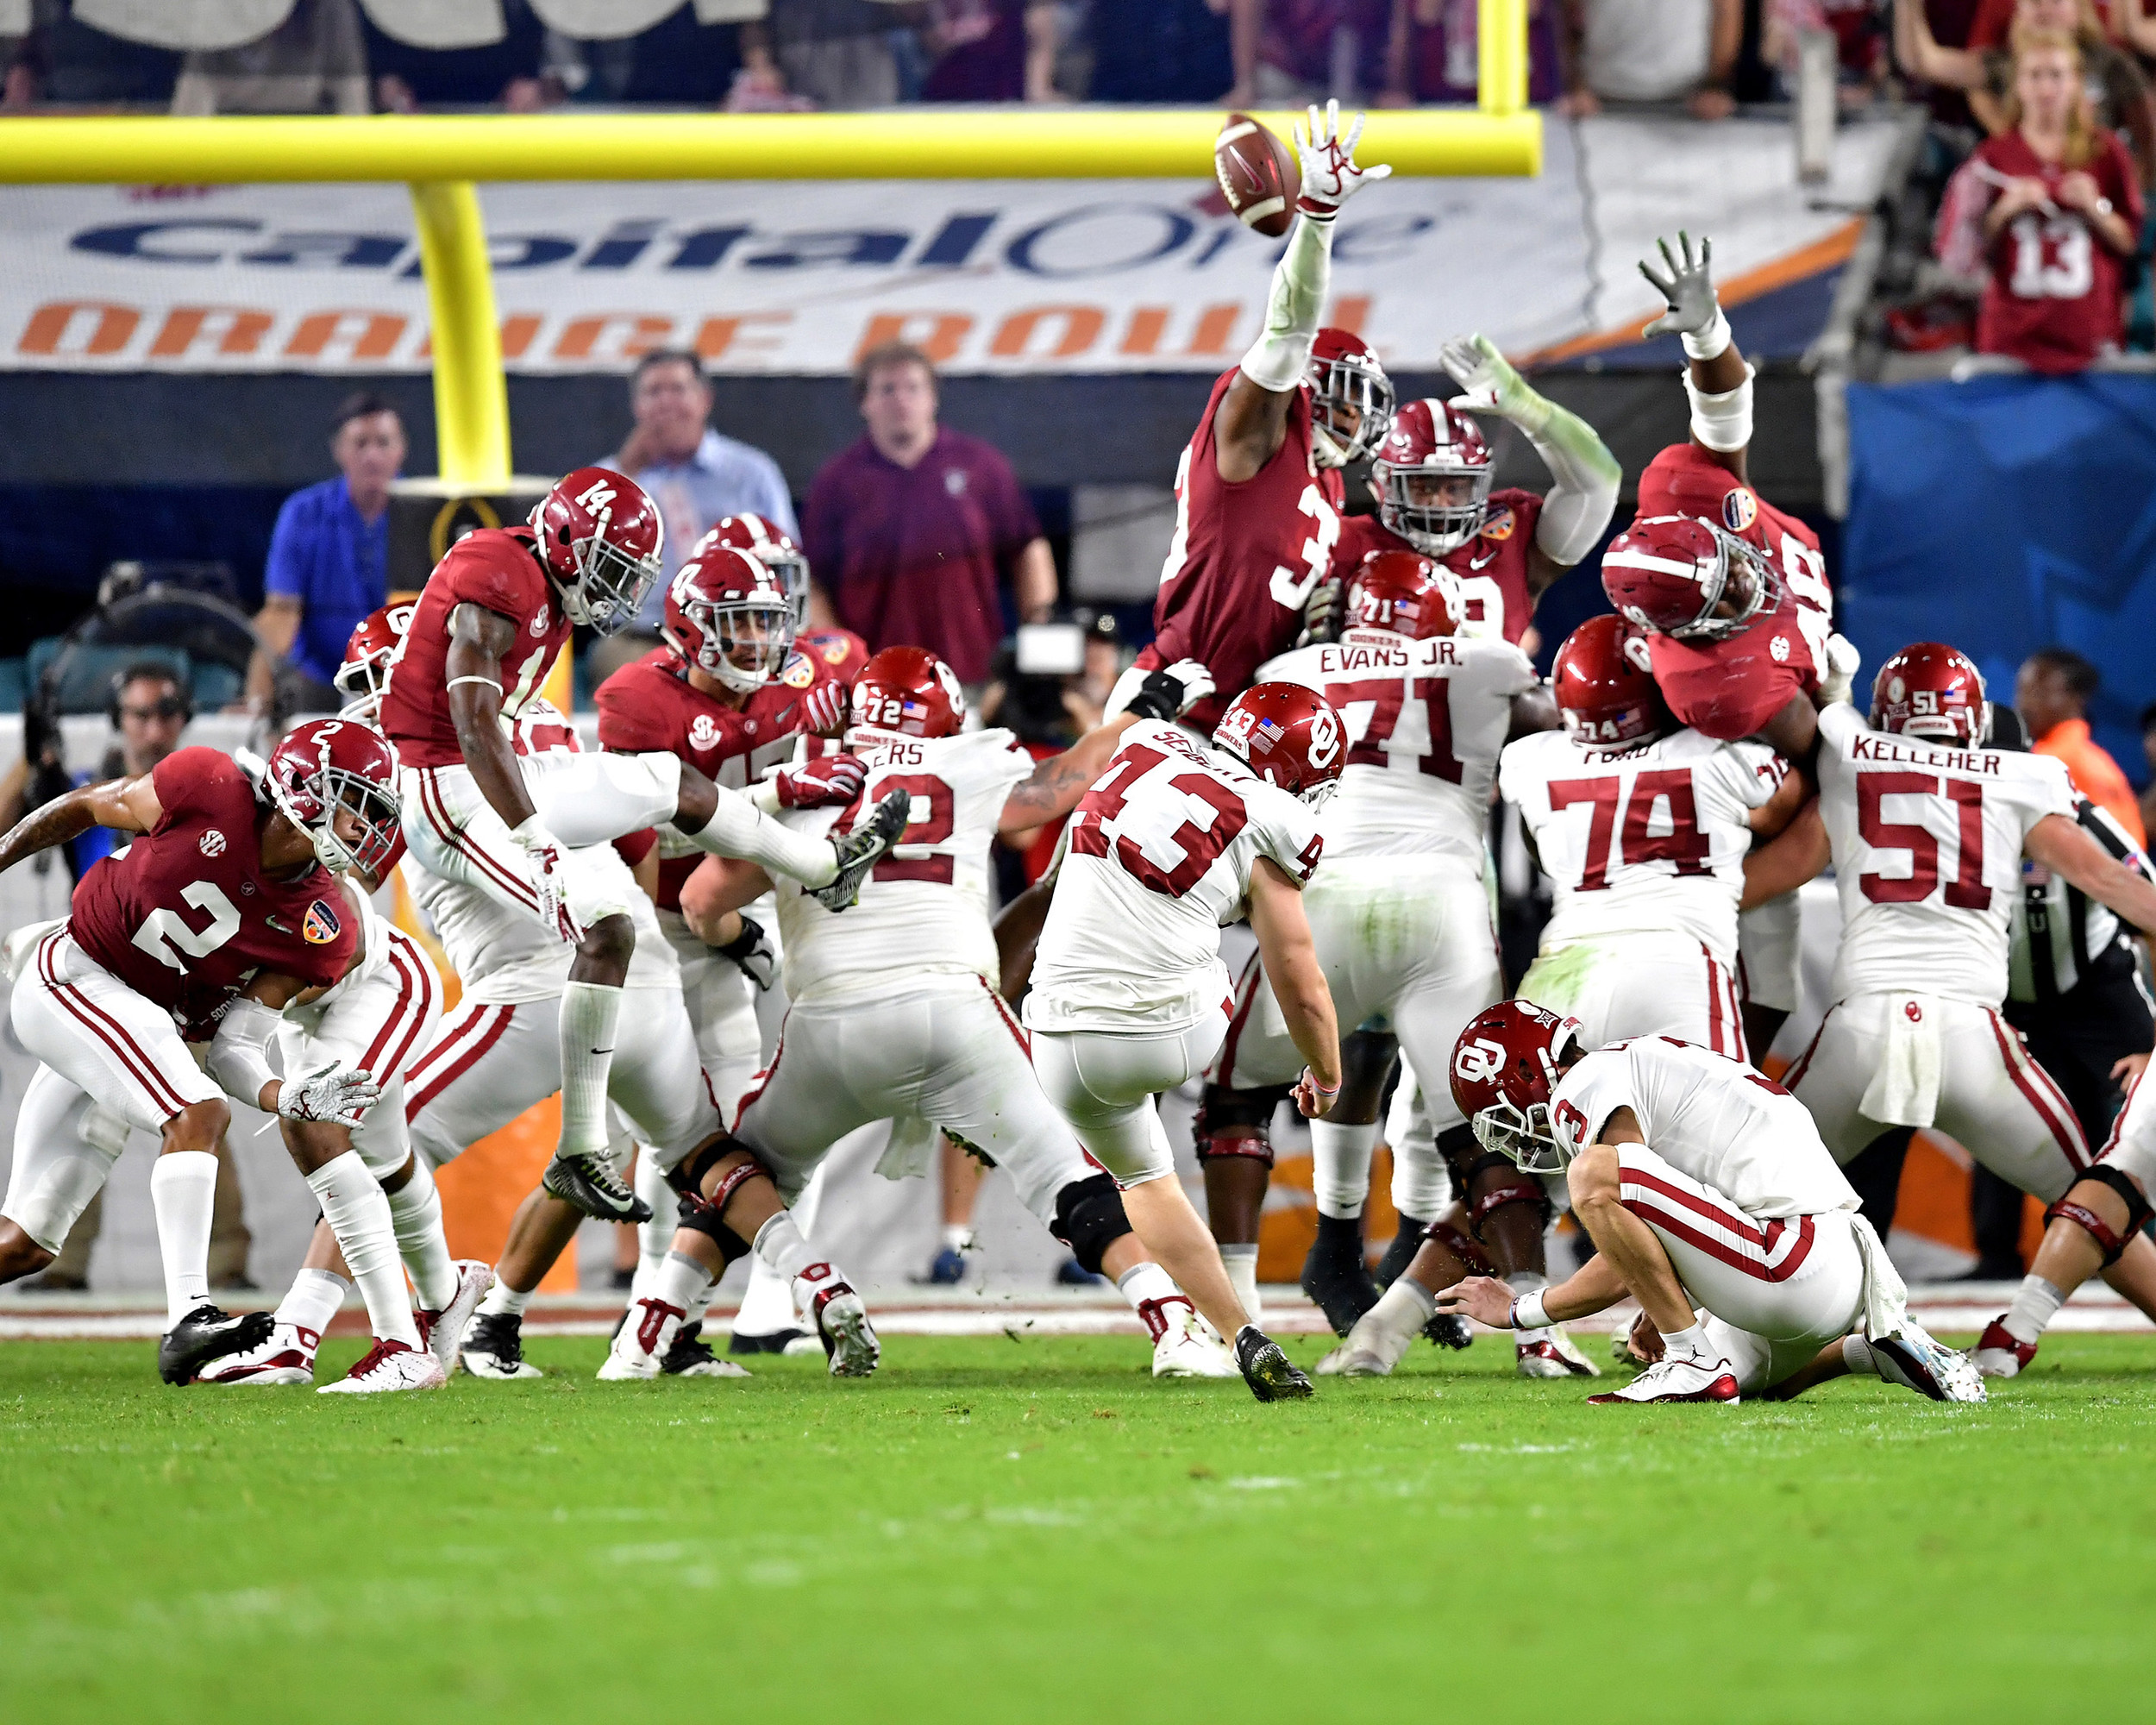 Alabama tries to block a kick during the first half of the Capital One Orange Bowl, featuring Alabama and the Oklahoma Sooners, at Hard Rock Stadium in Miami Gardens, Fla., Saturday, Dec. 29, 2018. Alabama wins 45-34. (Photo by Lee Walls)